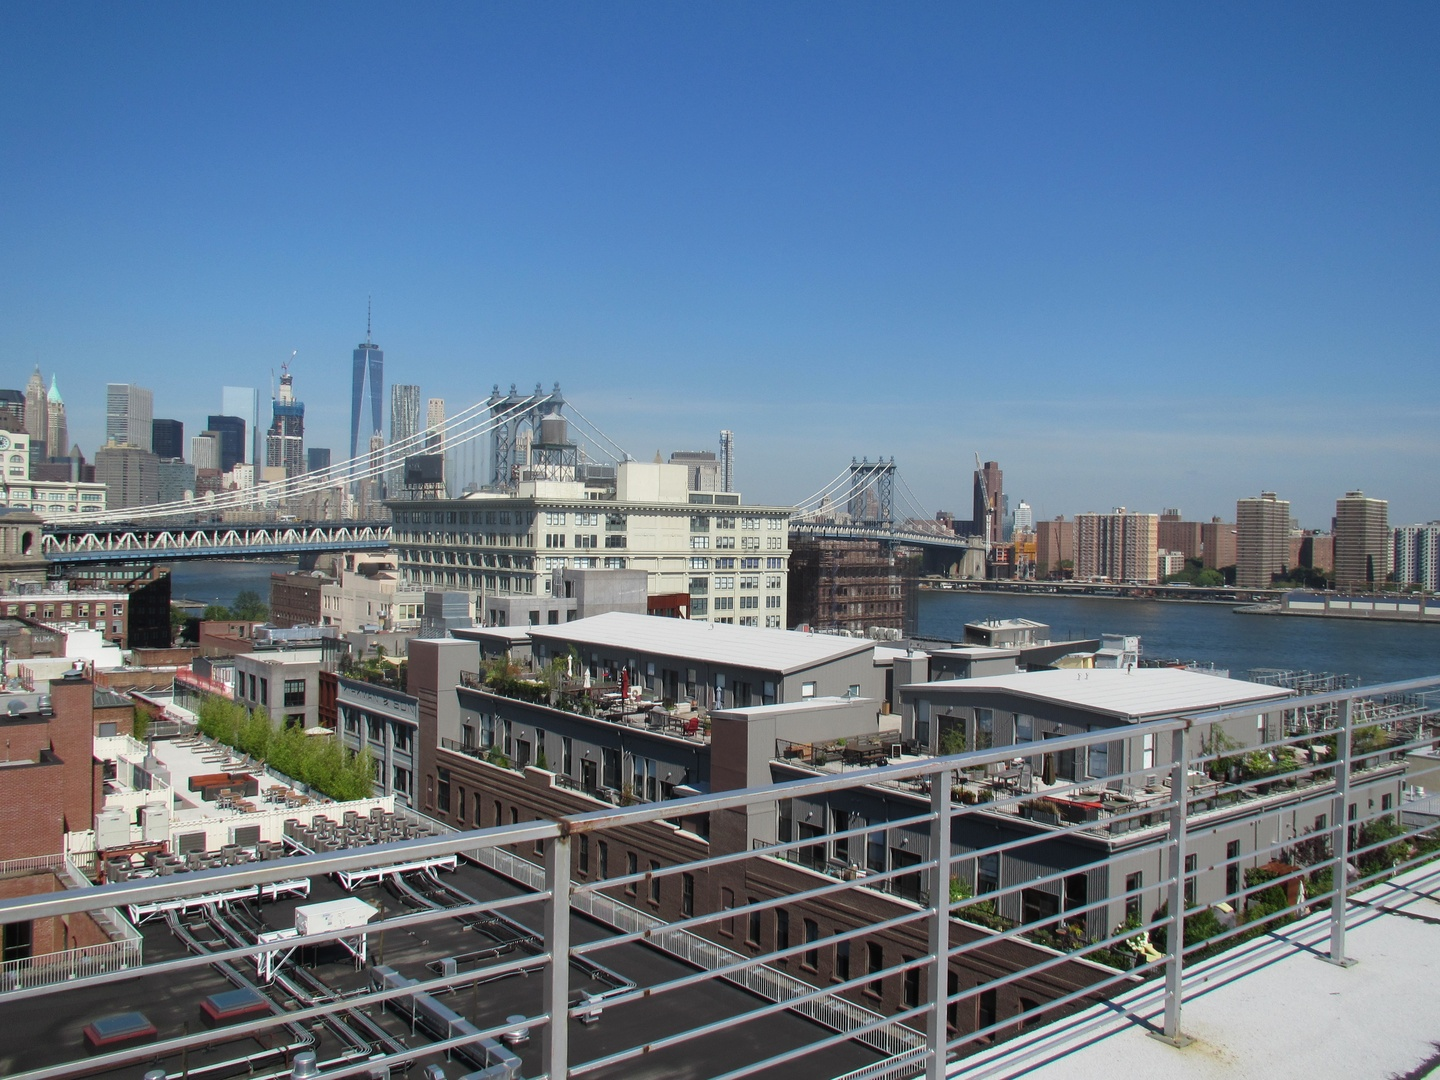 NYC corporate event venues Dachterrasse Seret Studios - Runway Rooftop image 1